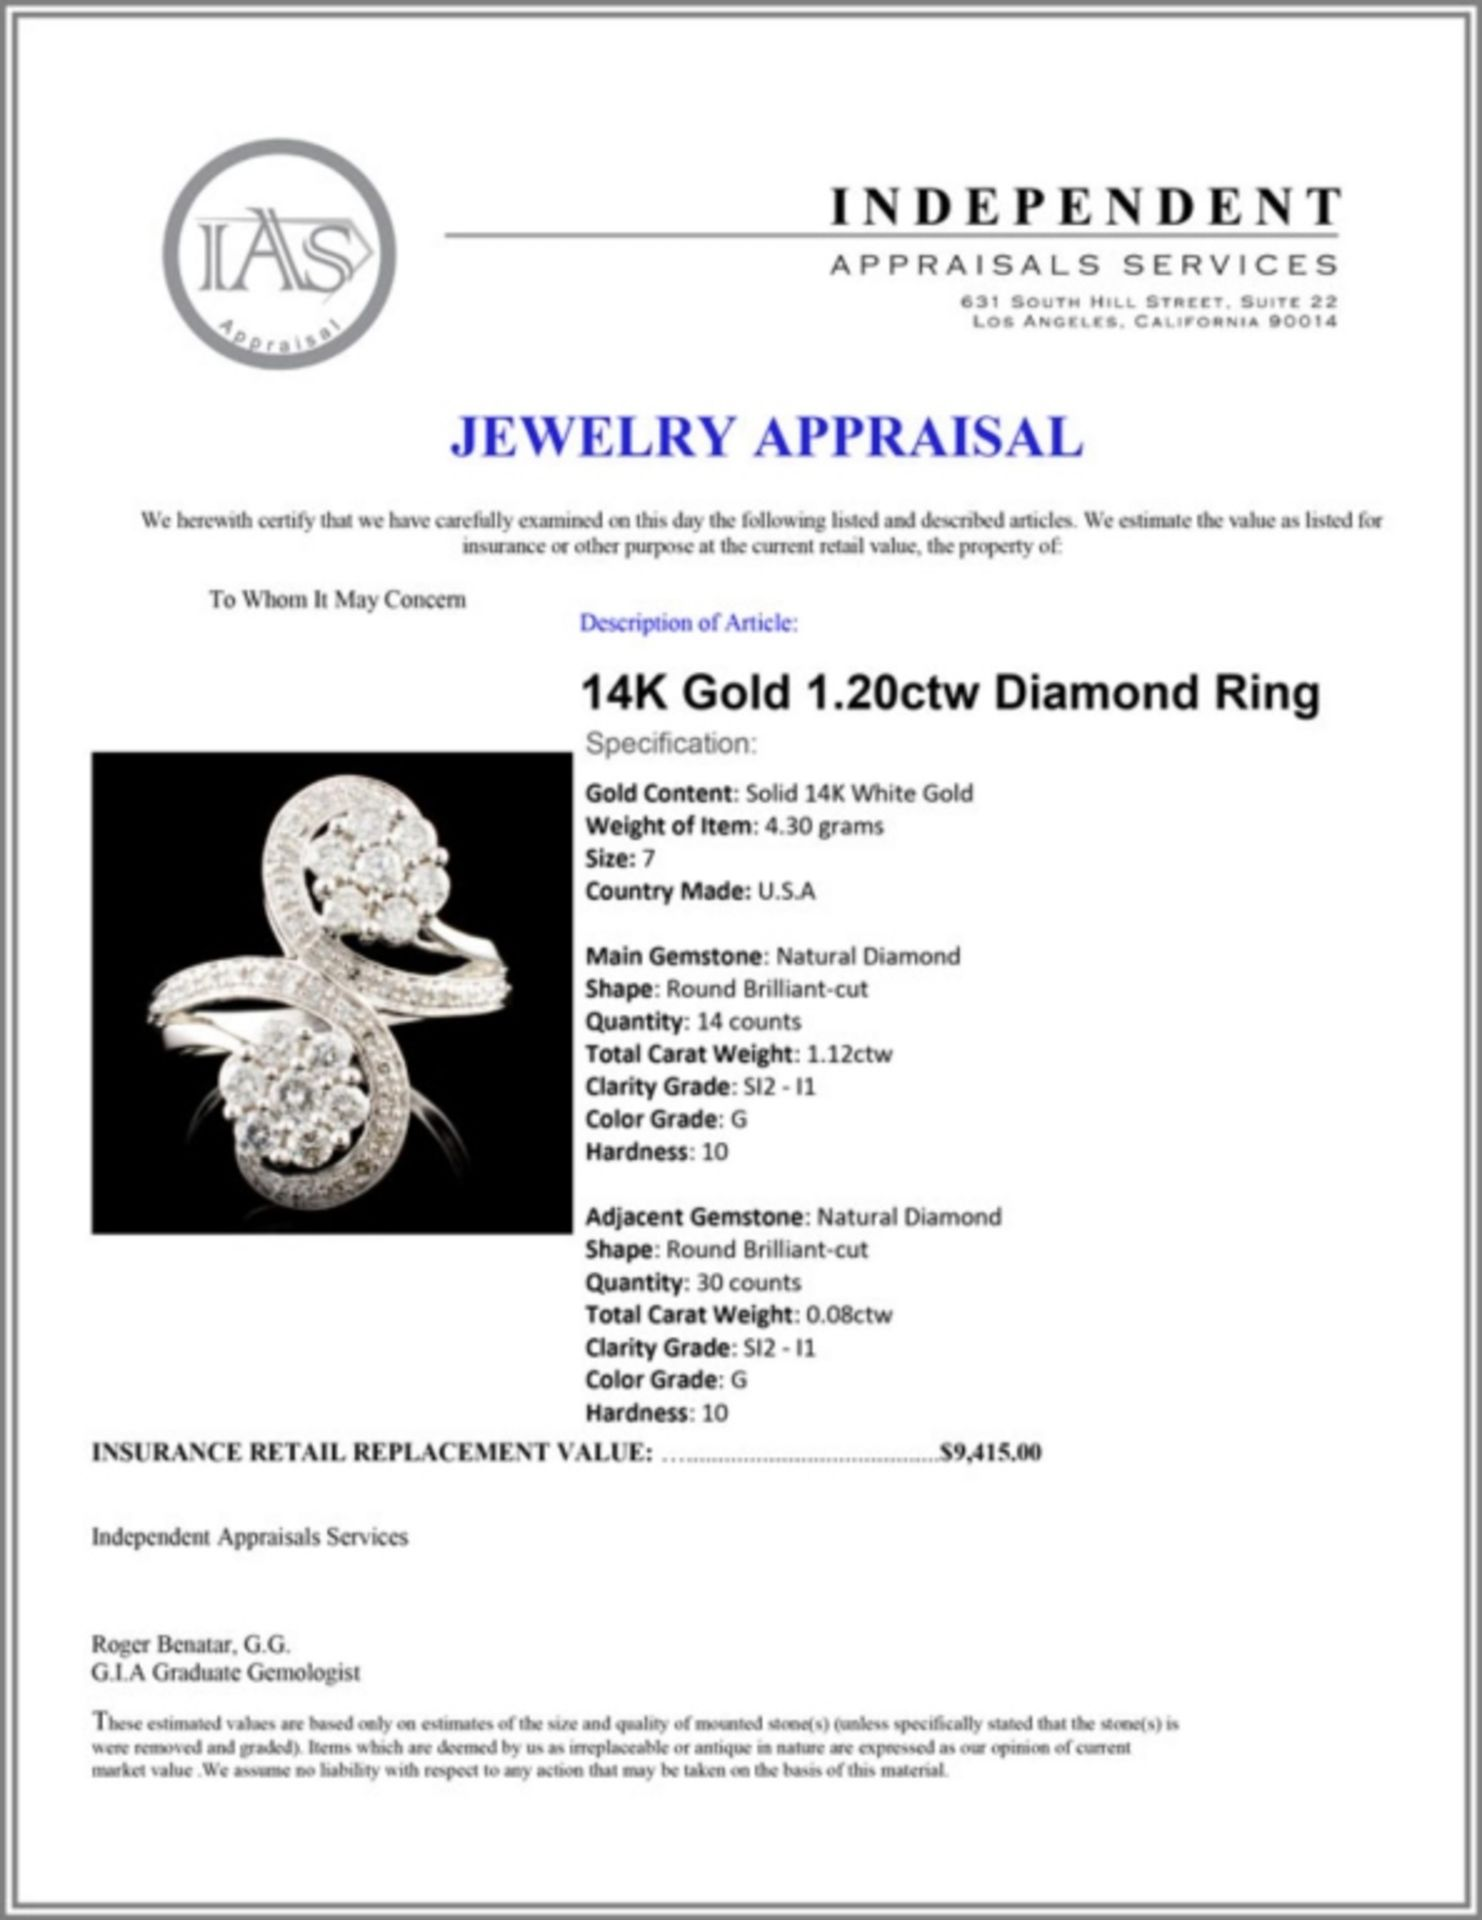 14K Gold 1.20ctw Diamond Ring - Image 5 of 5